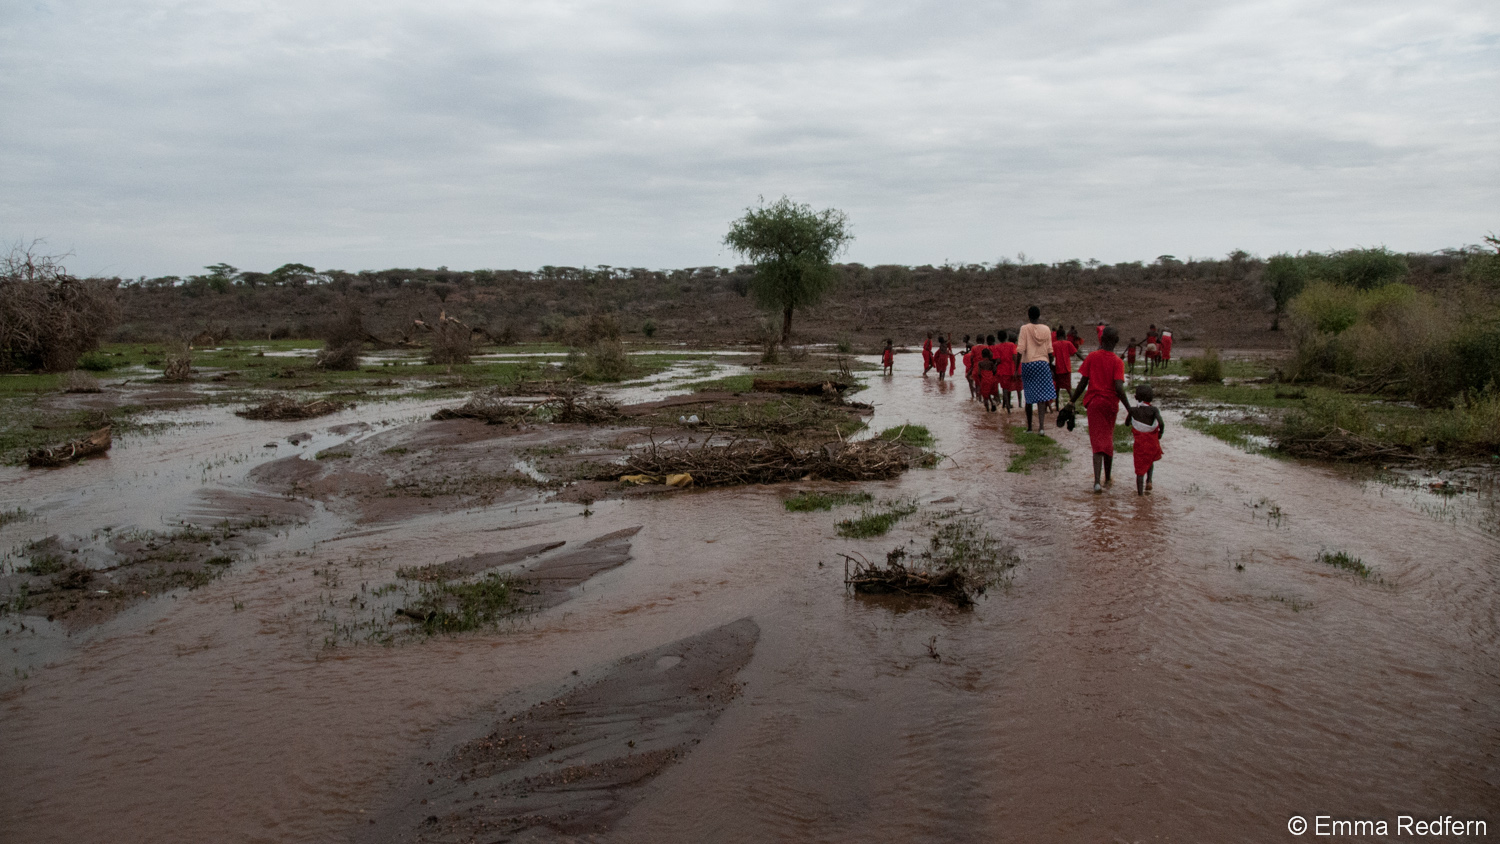 School children walking across flooded land - Isiolo County